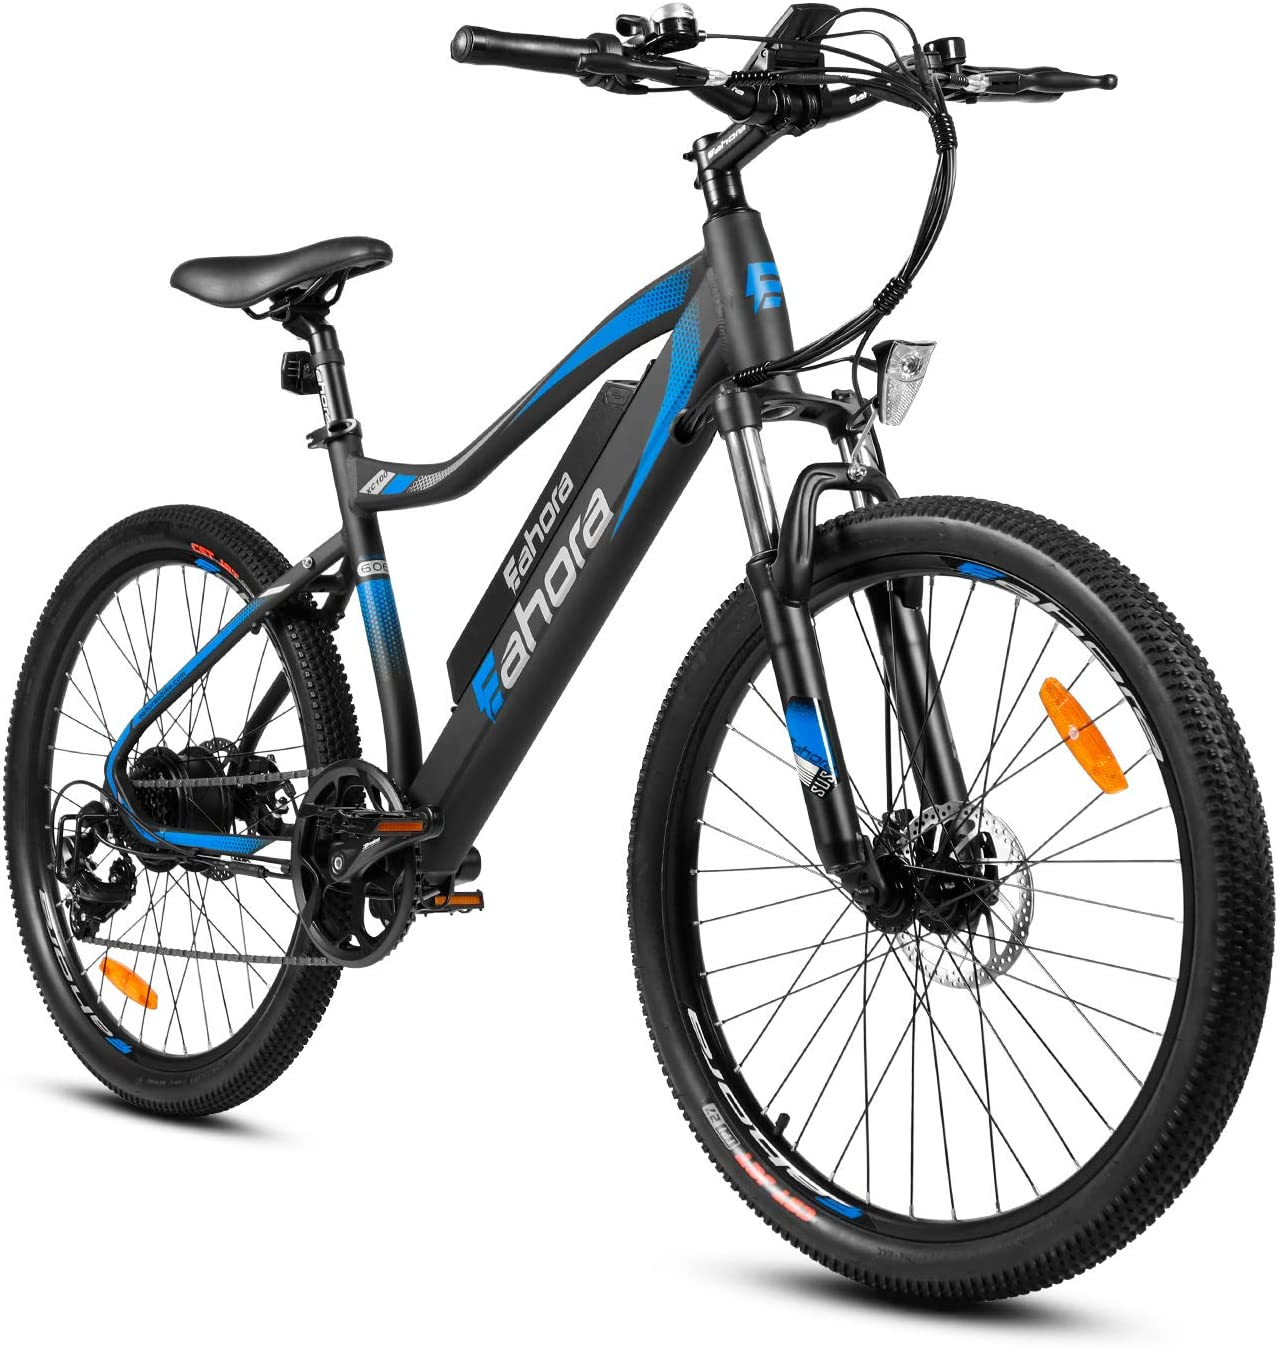 San Diego Mall Eahora XC100 Plus 26 inch Electric for Price reduction Speed Bike E-Bike Adult 7